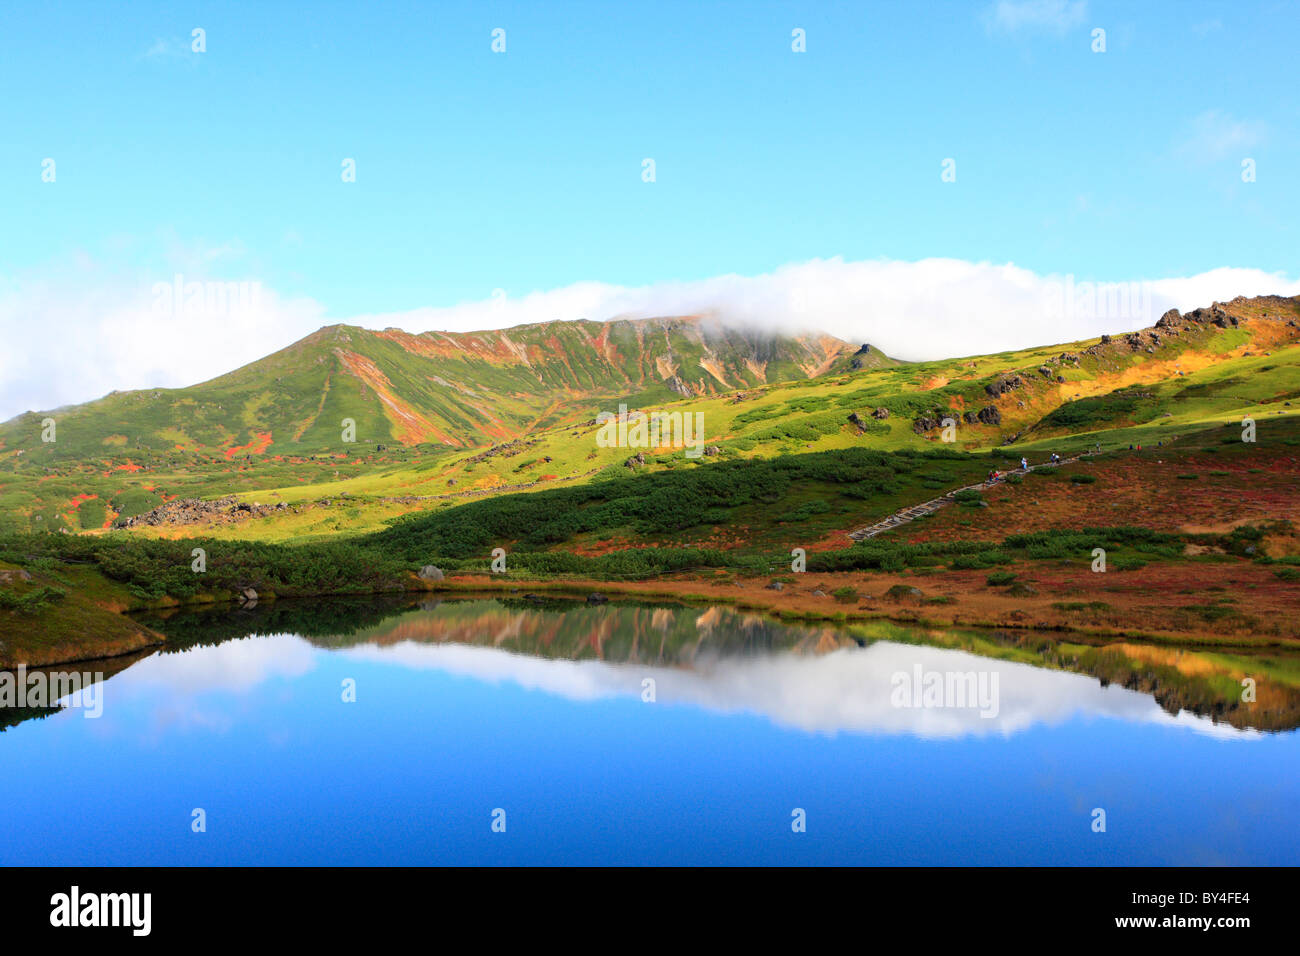 Pond in Mountains Stock Photo